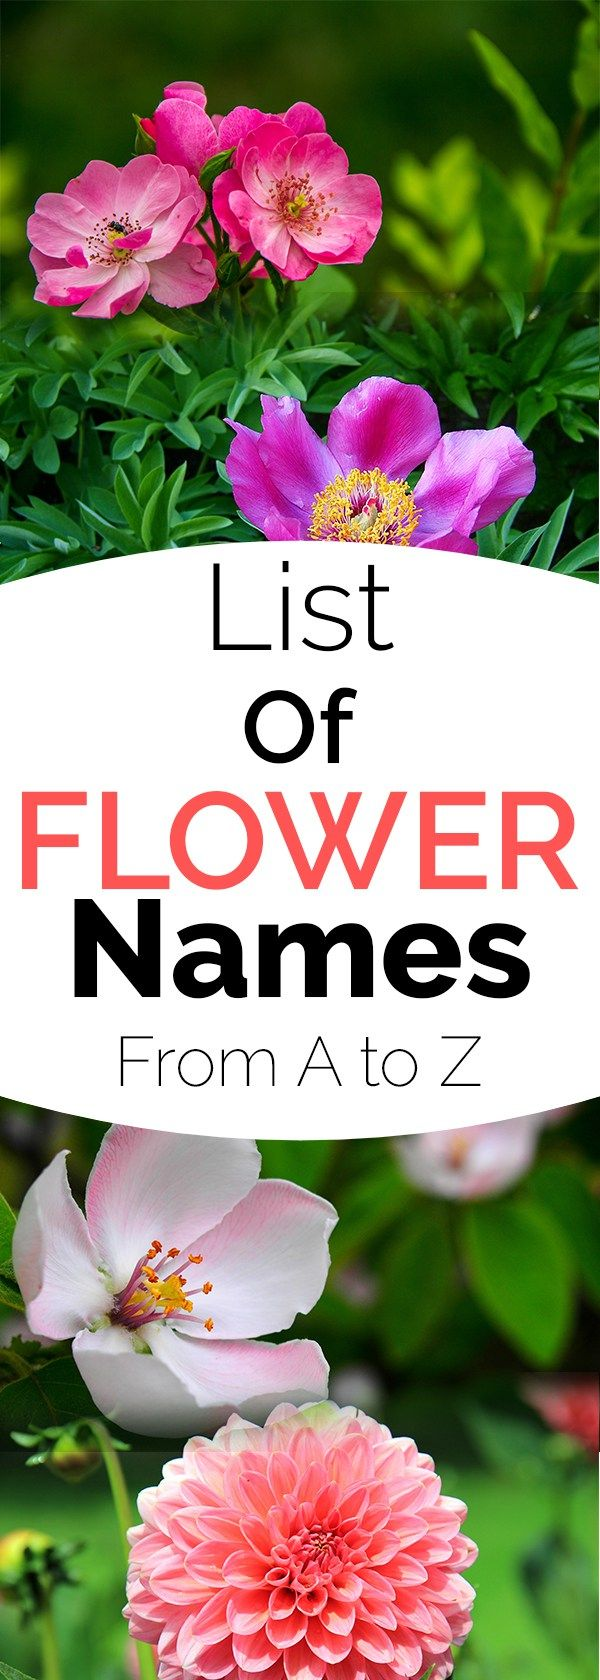 List of Flower Names, from A to Z Flowers name list